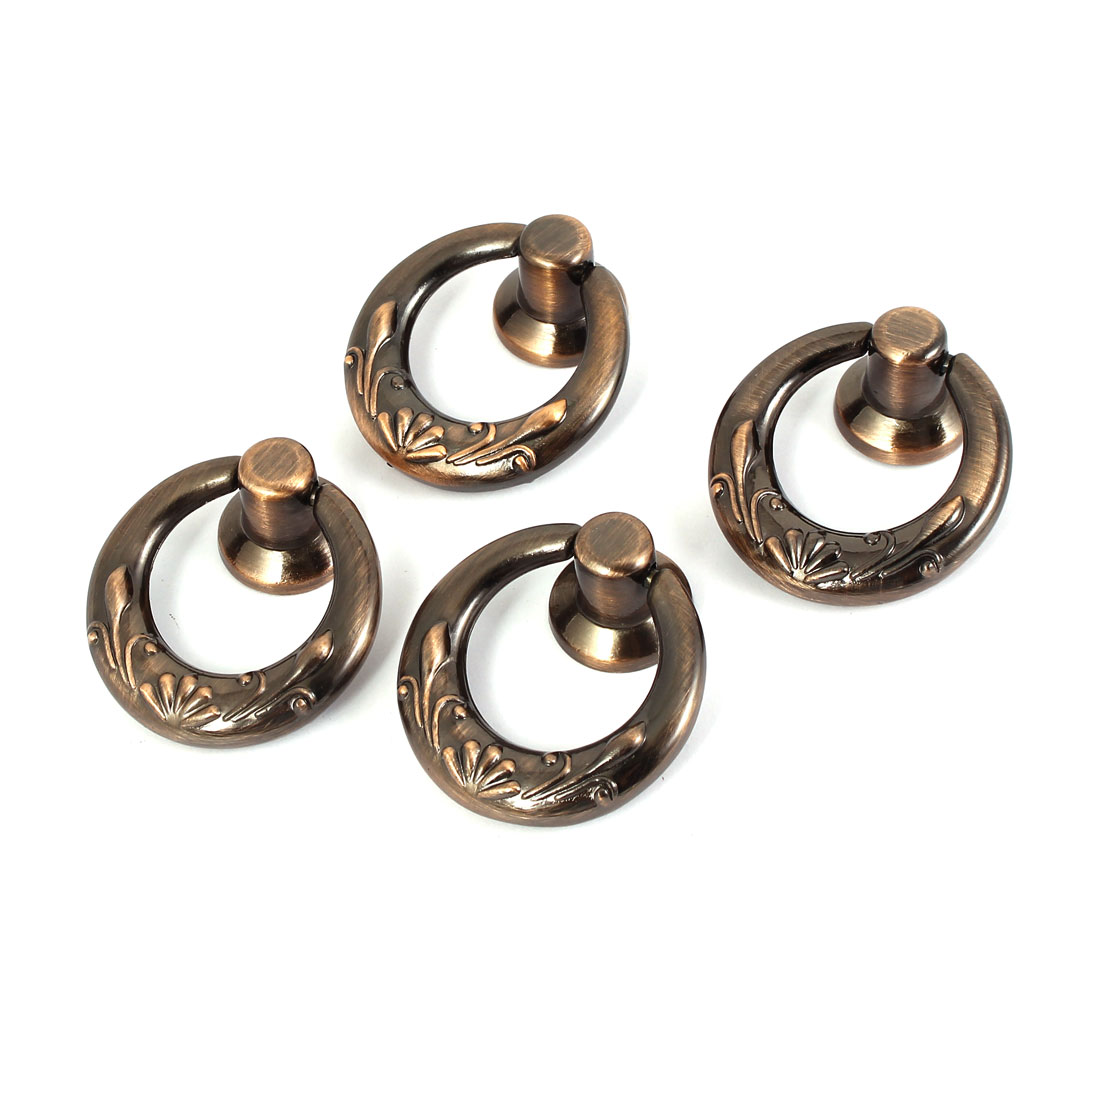 Dresser Drawer Cupboard Door Pull Ring Handle Knobs Copper Tone 40mm Dia 4 Pcs